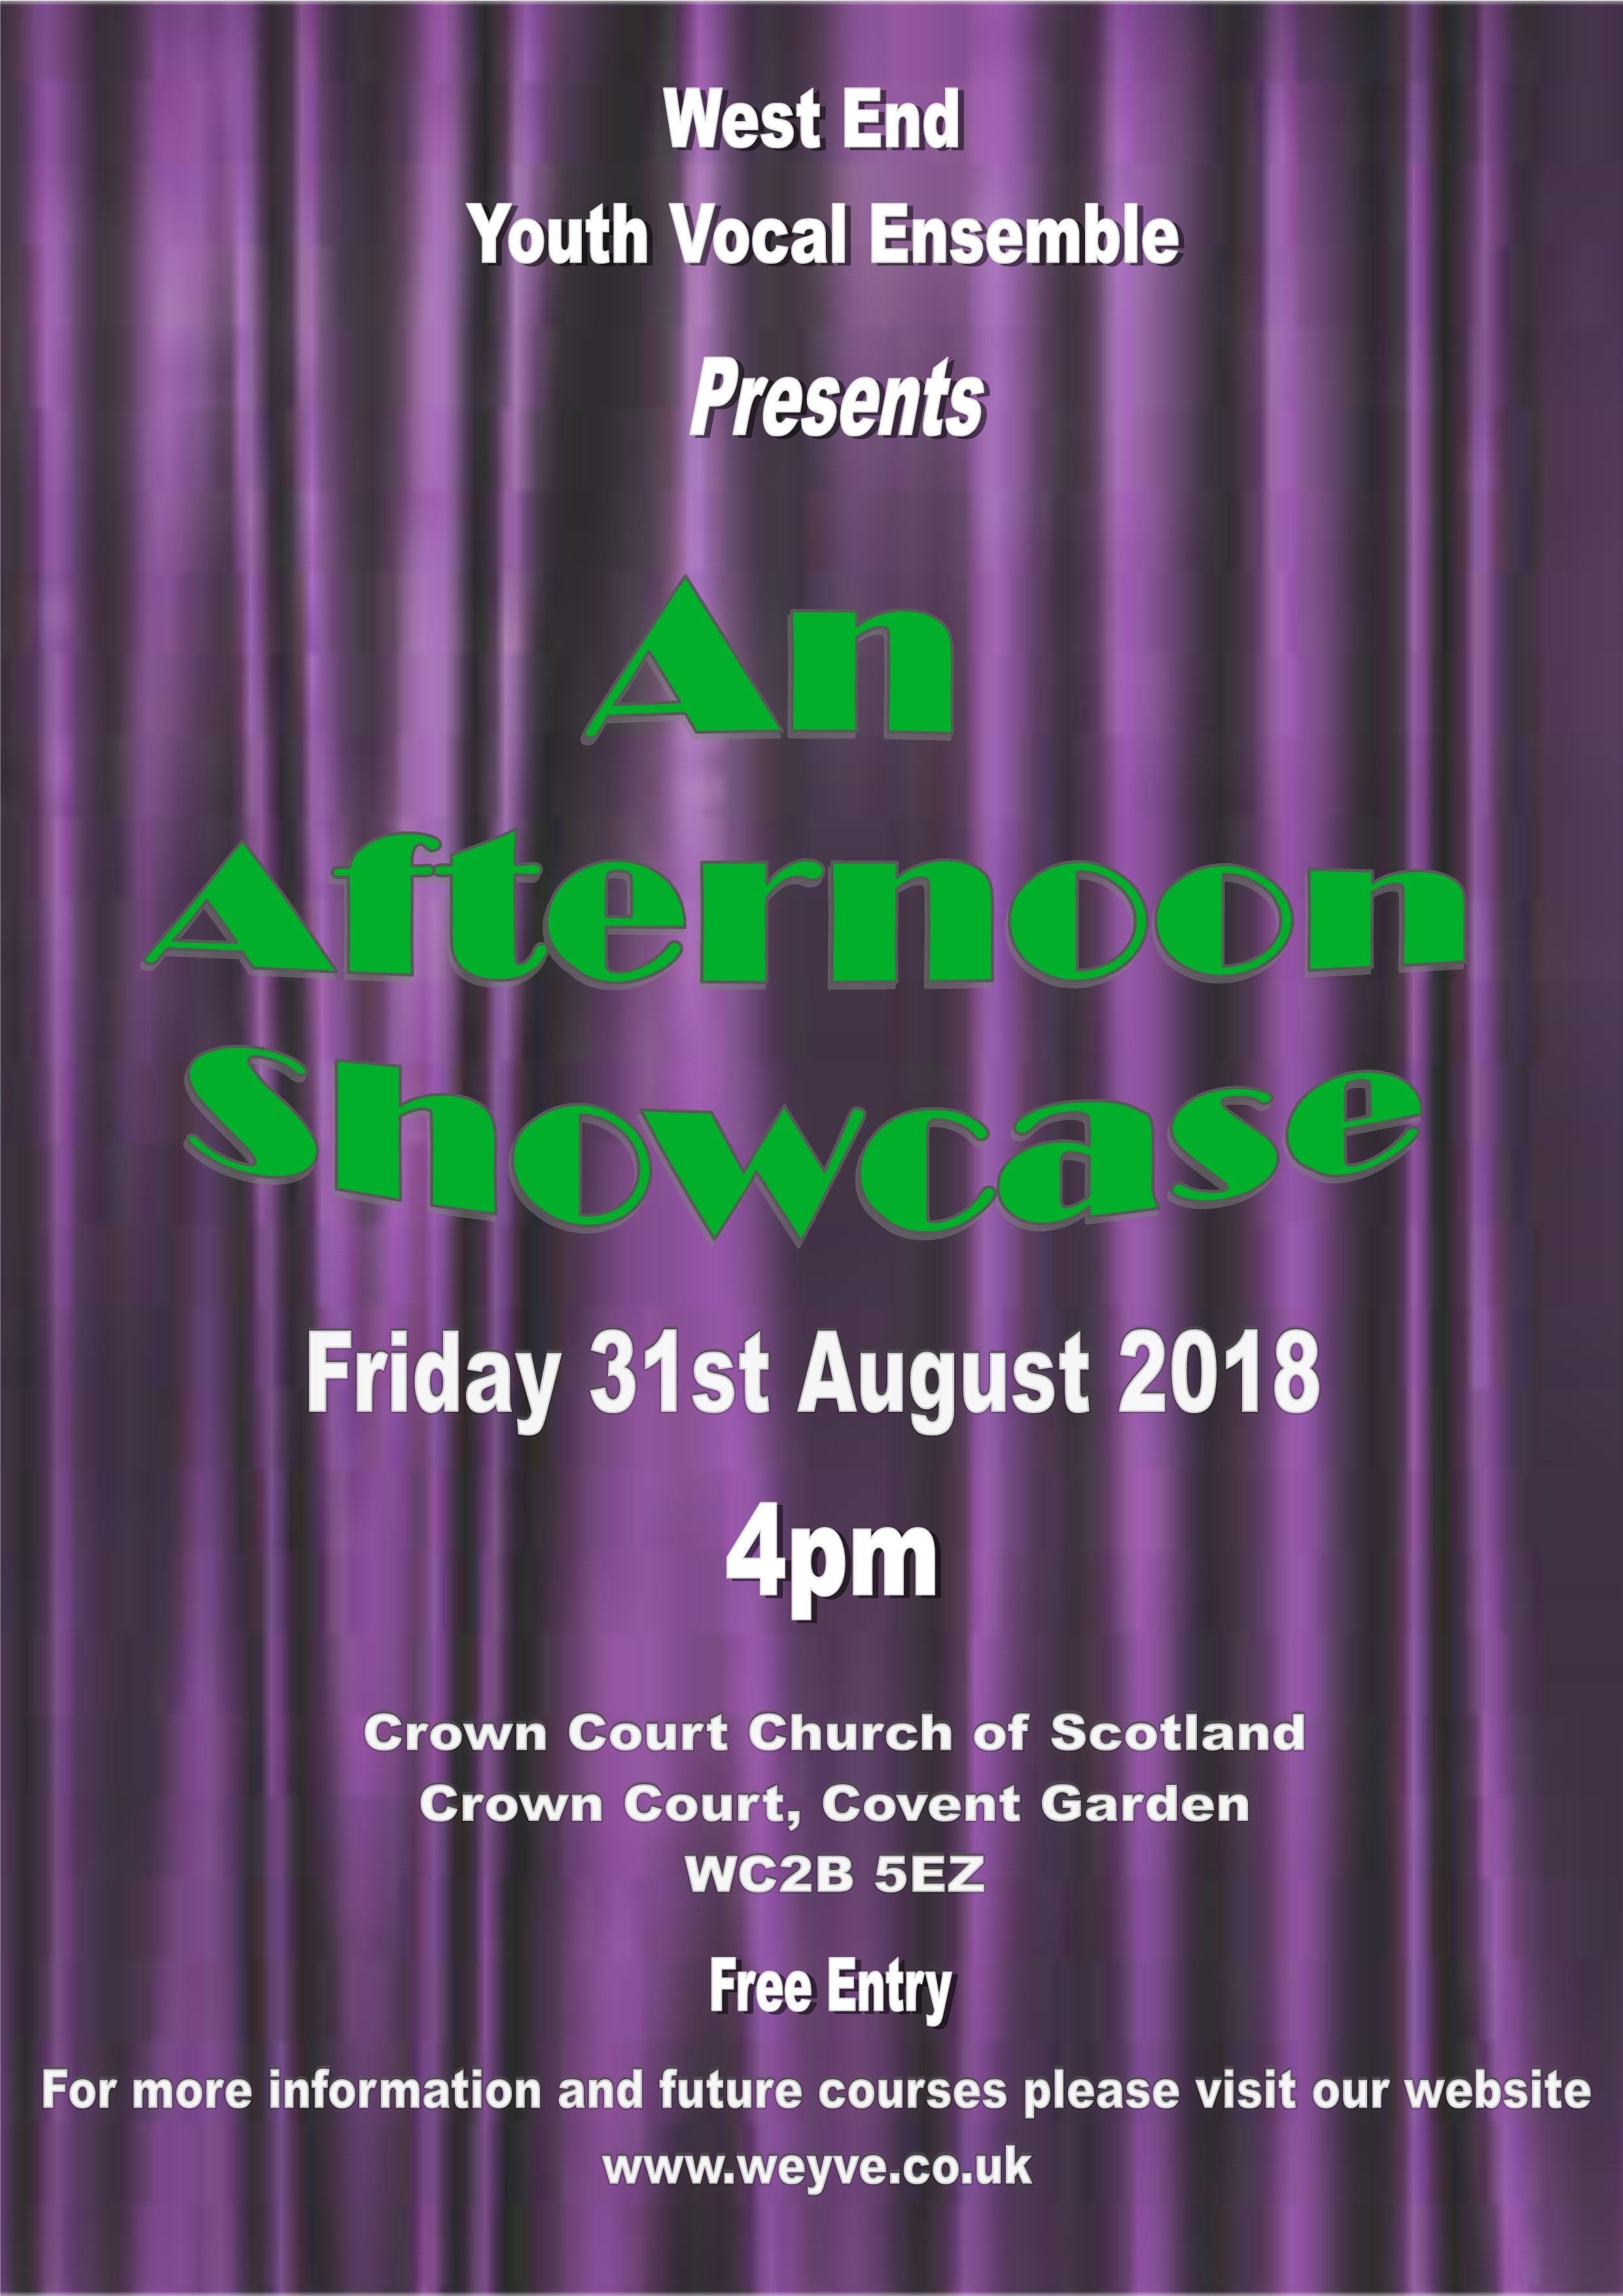 WEYVE Afternoon Showcase poster for 31 August 2018